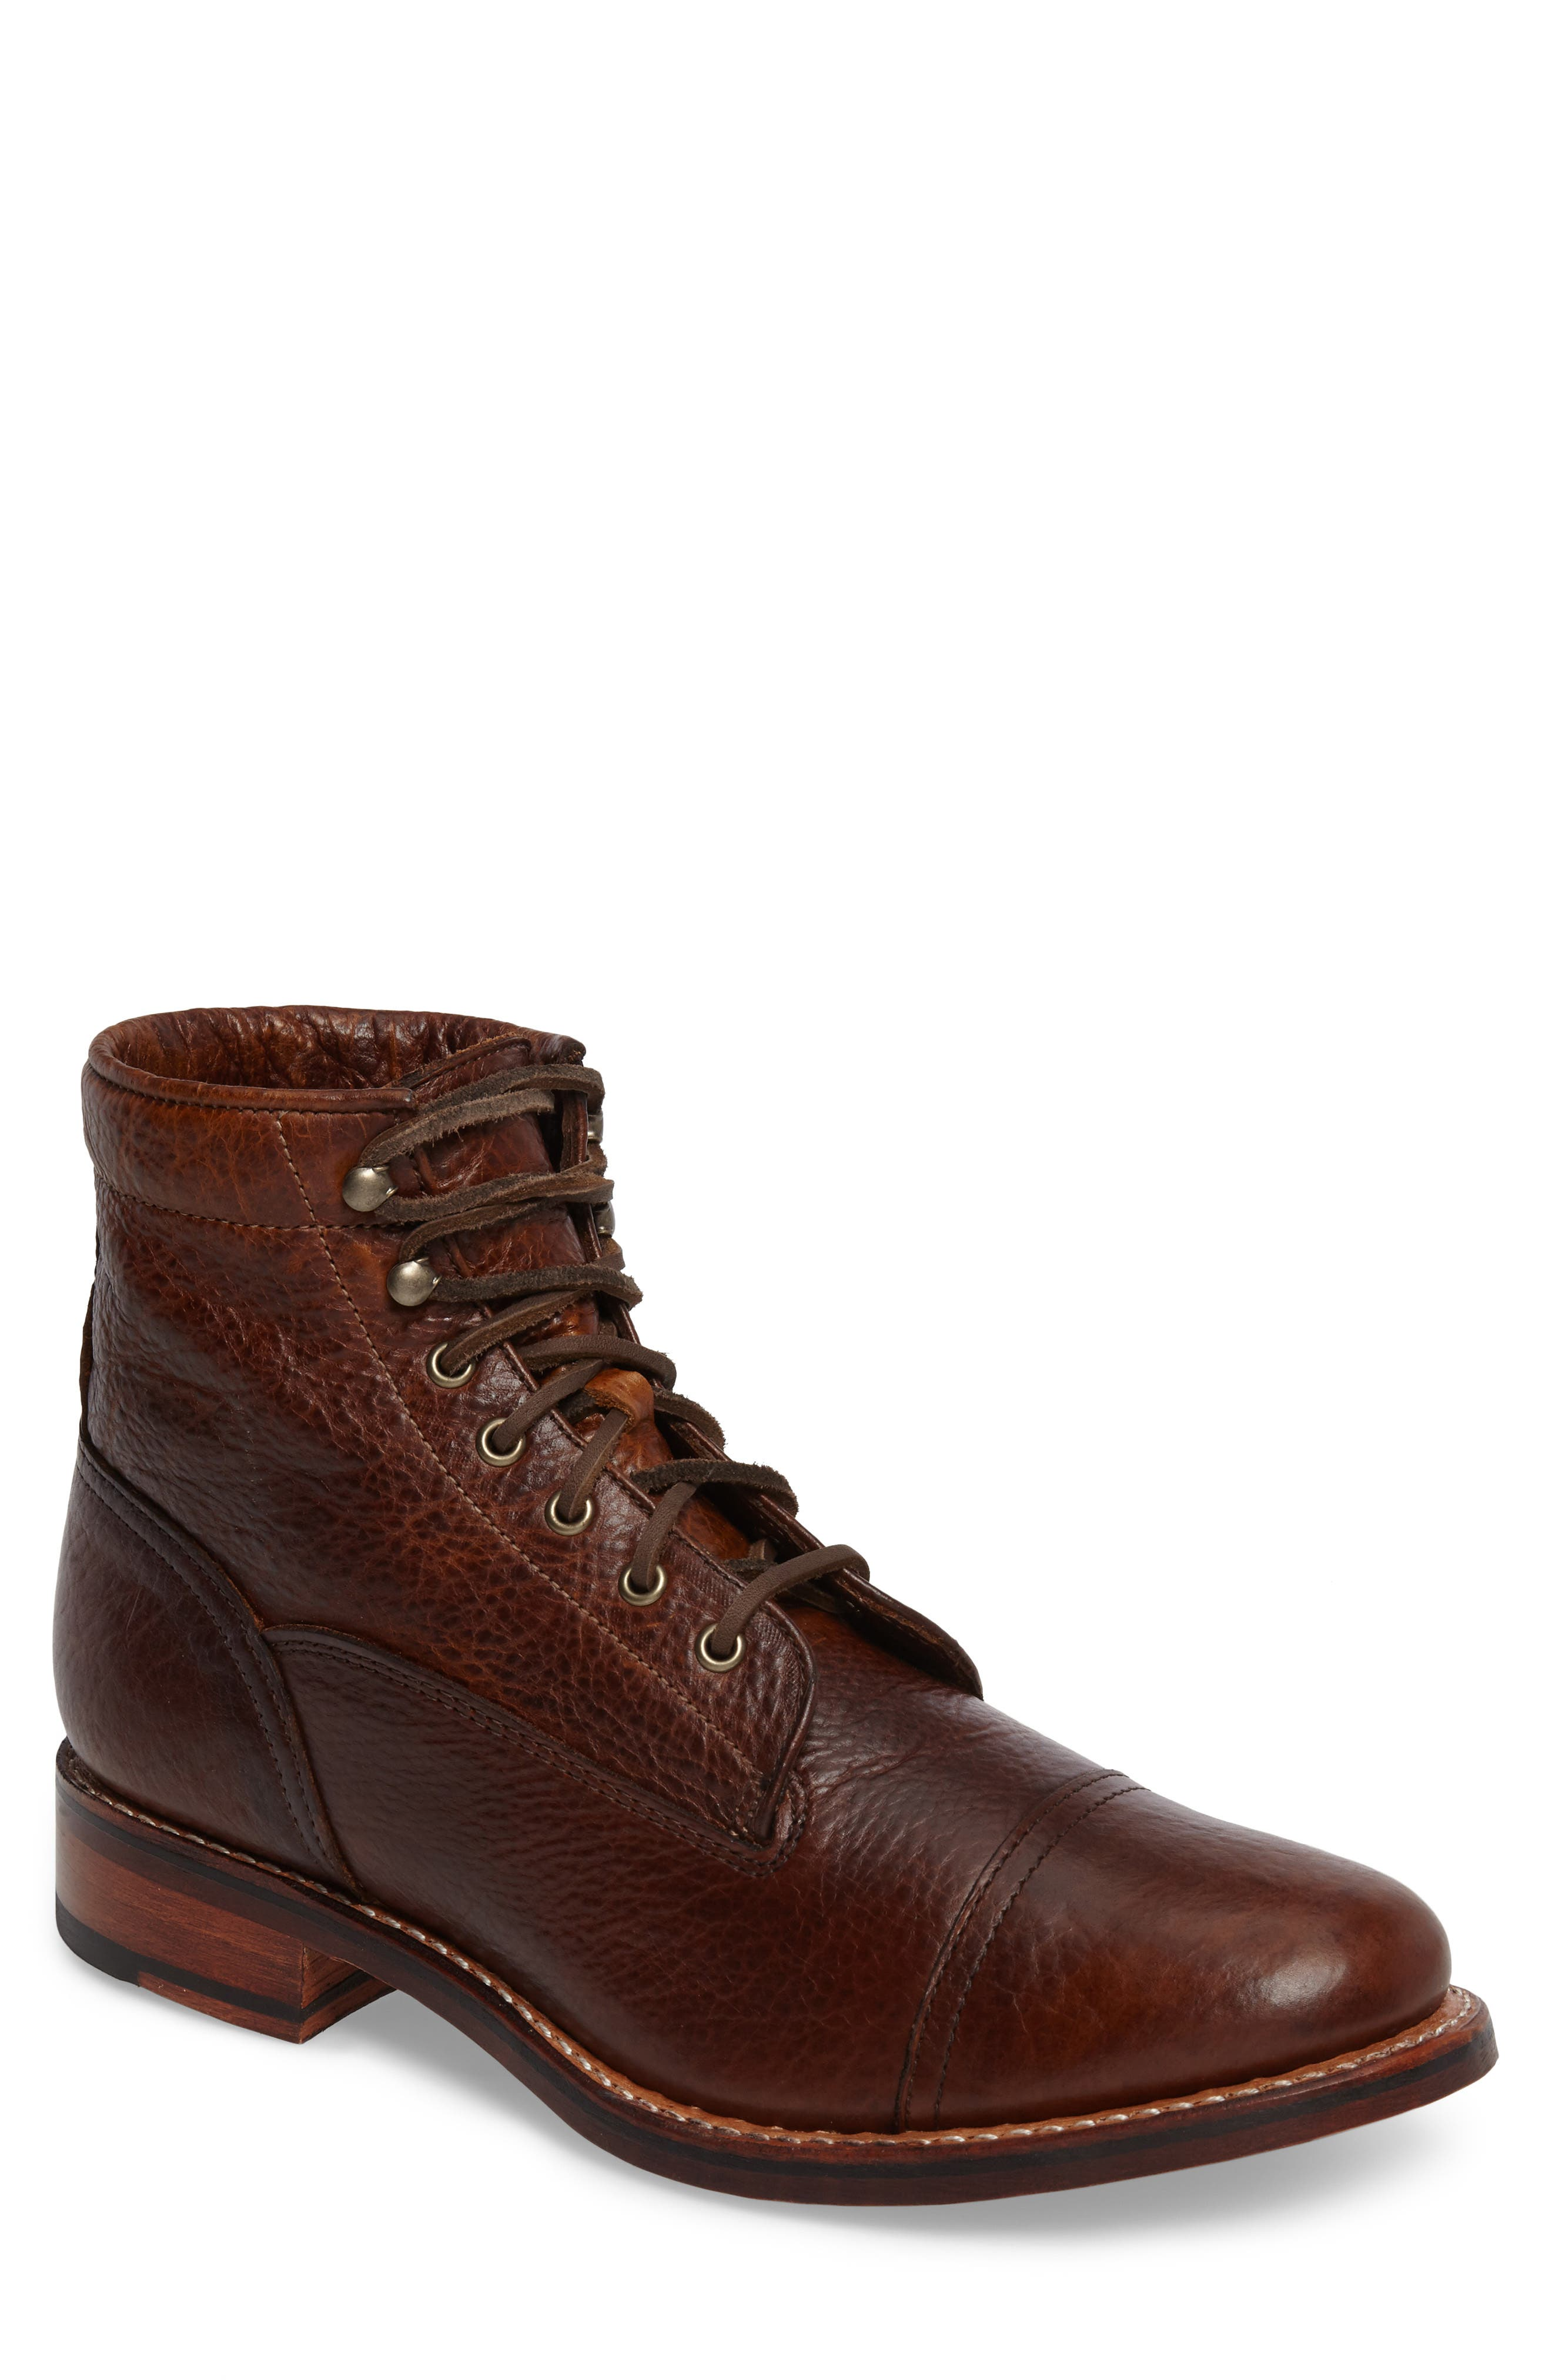 Ariat Highlands Cap Toe Boot,                             Main thumbnail 1, color,                             Whiskey Bourbon Leather